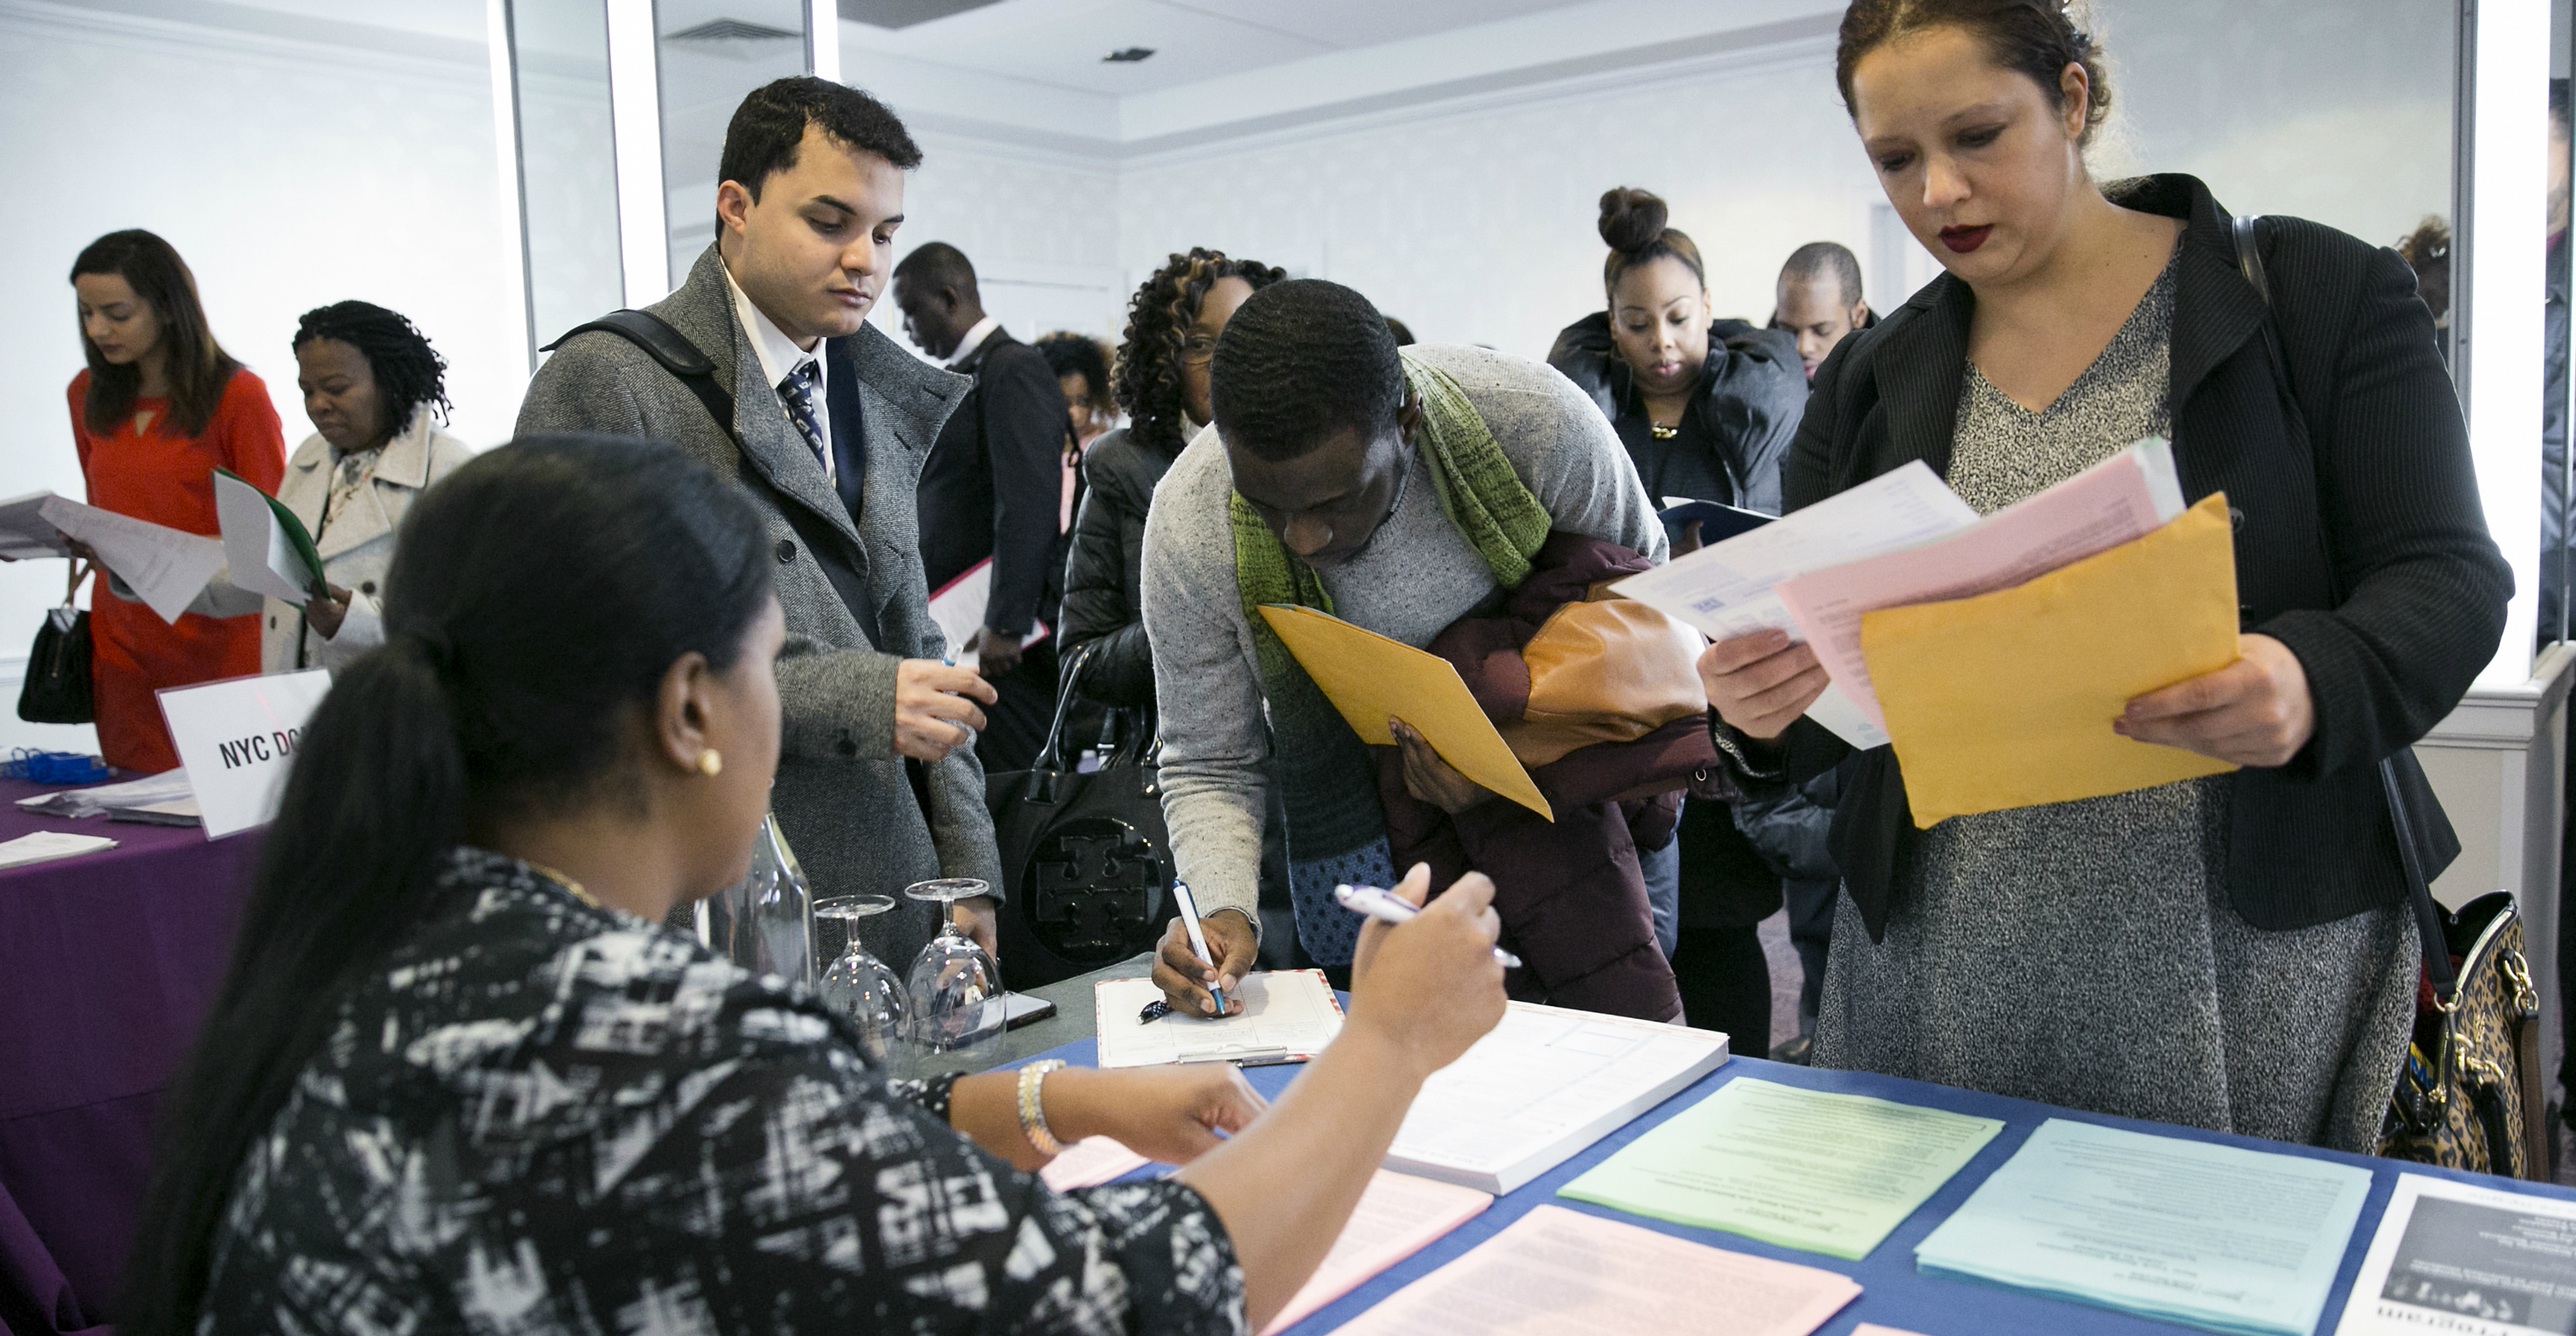 Jobseekers fill out forms at a jobs fair in New York. The old economic theory that asserts a clear tradeoff between unemployment and inflation does not hold true in the US and Britain after the global financial crisis. Photo: Bloomberg